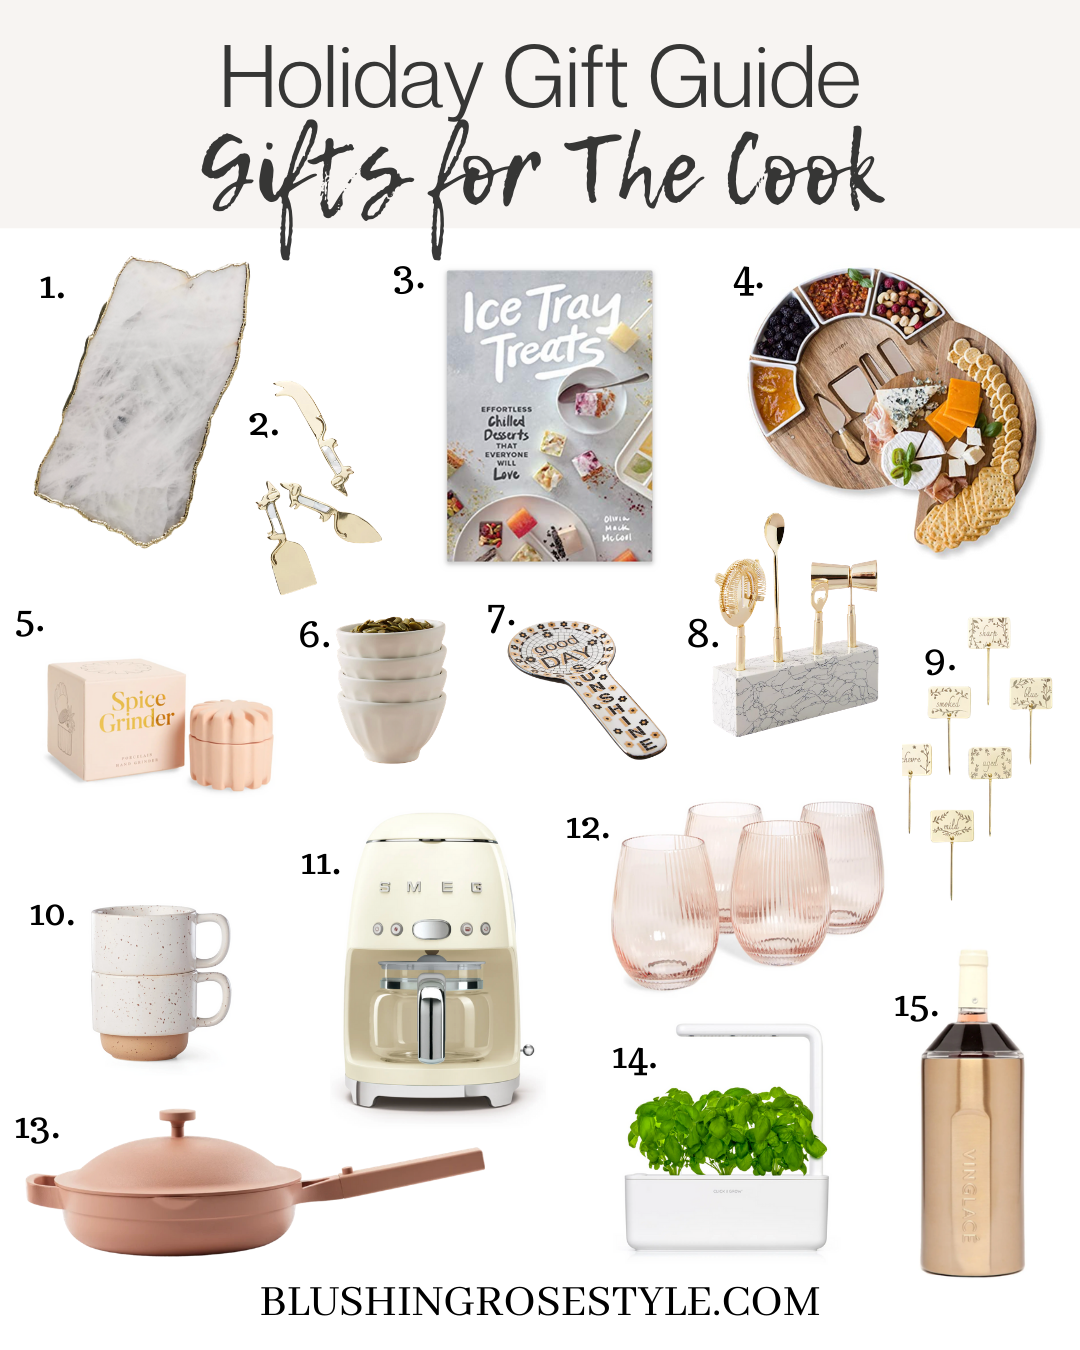 Gifts for The Cook